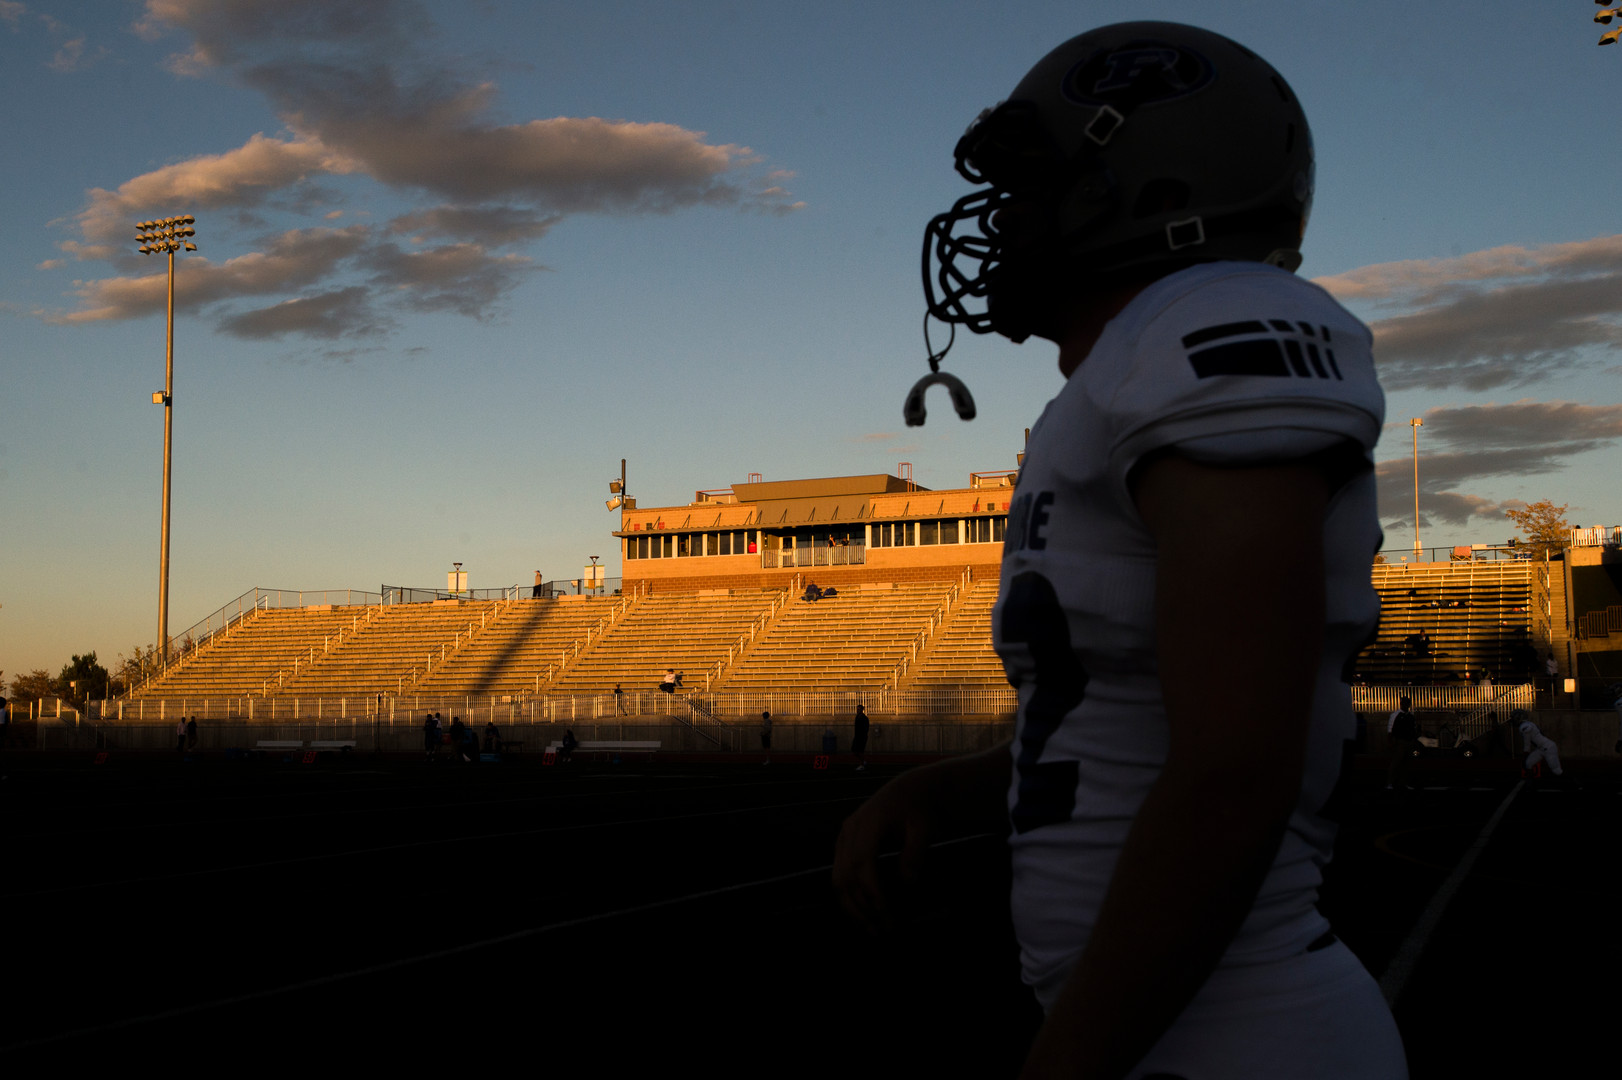 6:06 p.m. - Poudre High School football players warm up at EchoPark Stadium in Parker before taking on Legend High School Thursday, October 13, 2016.